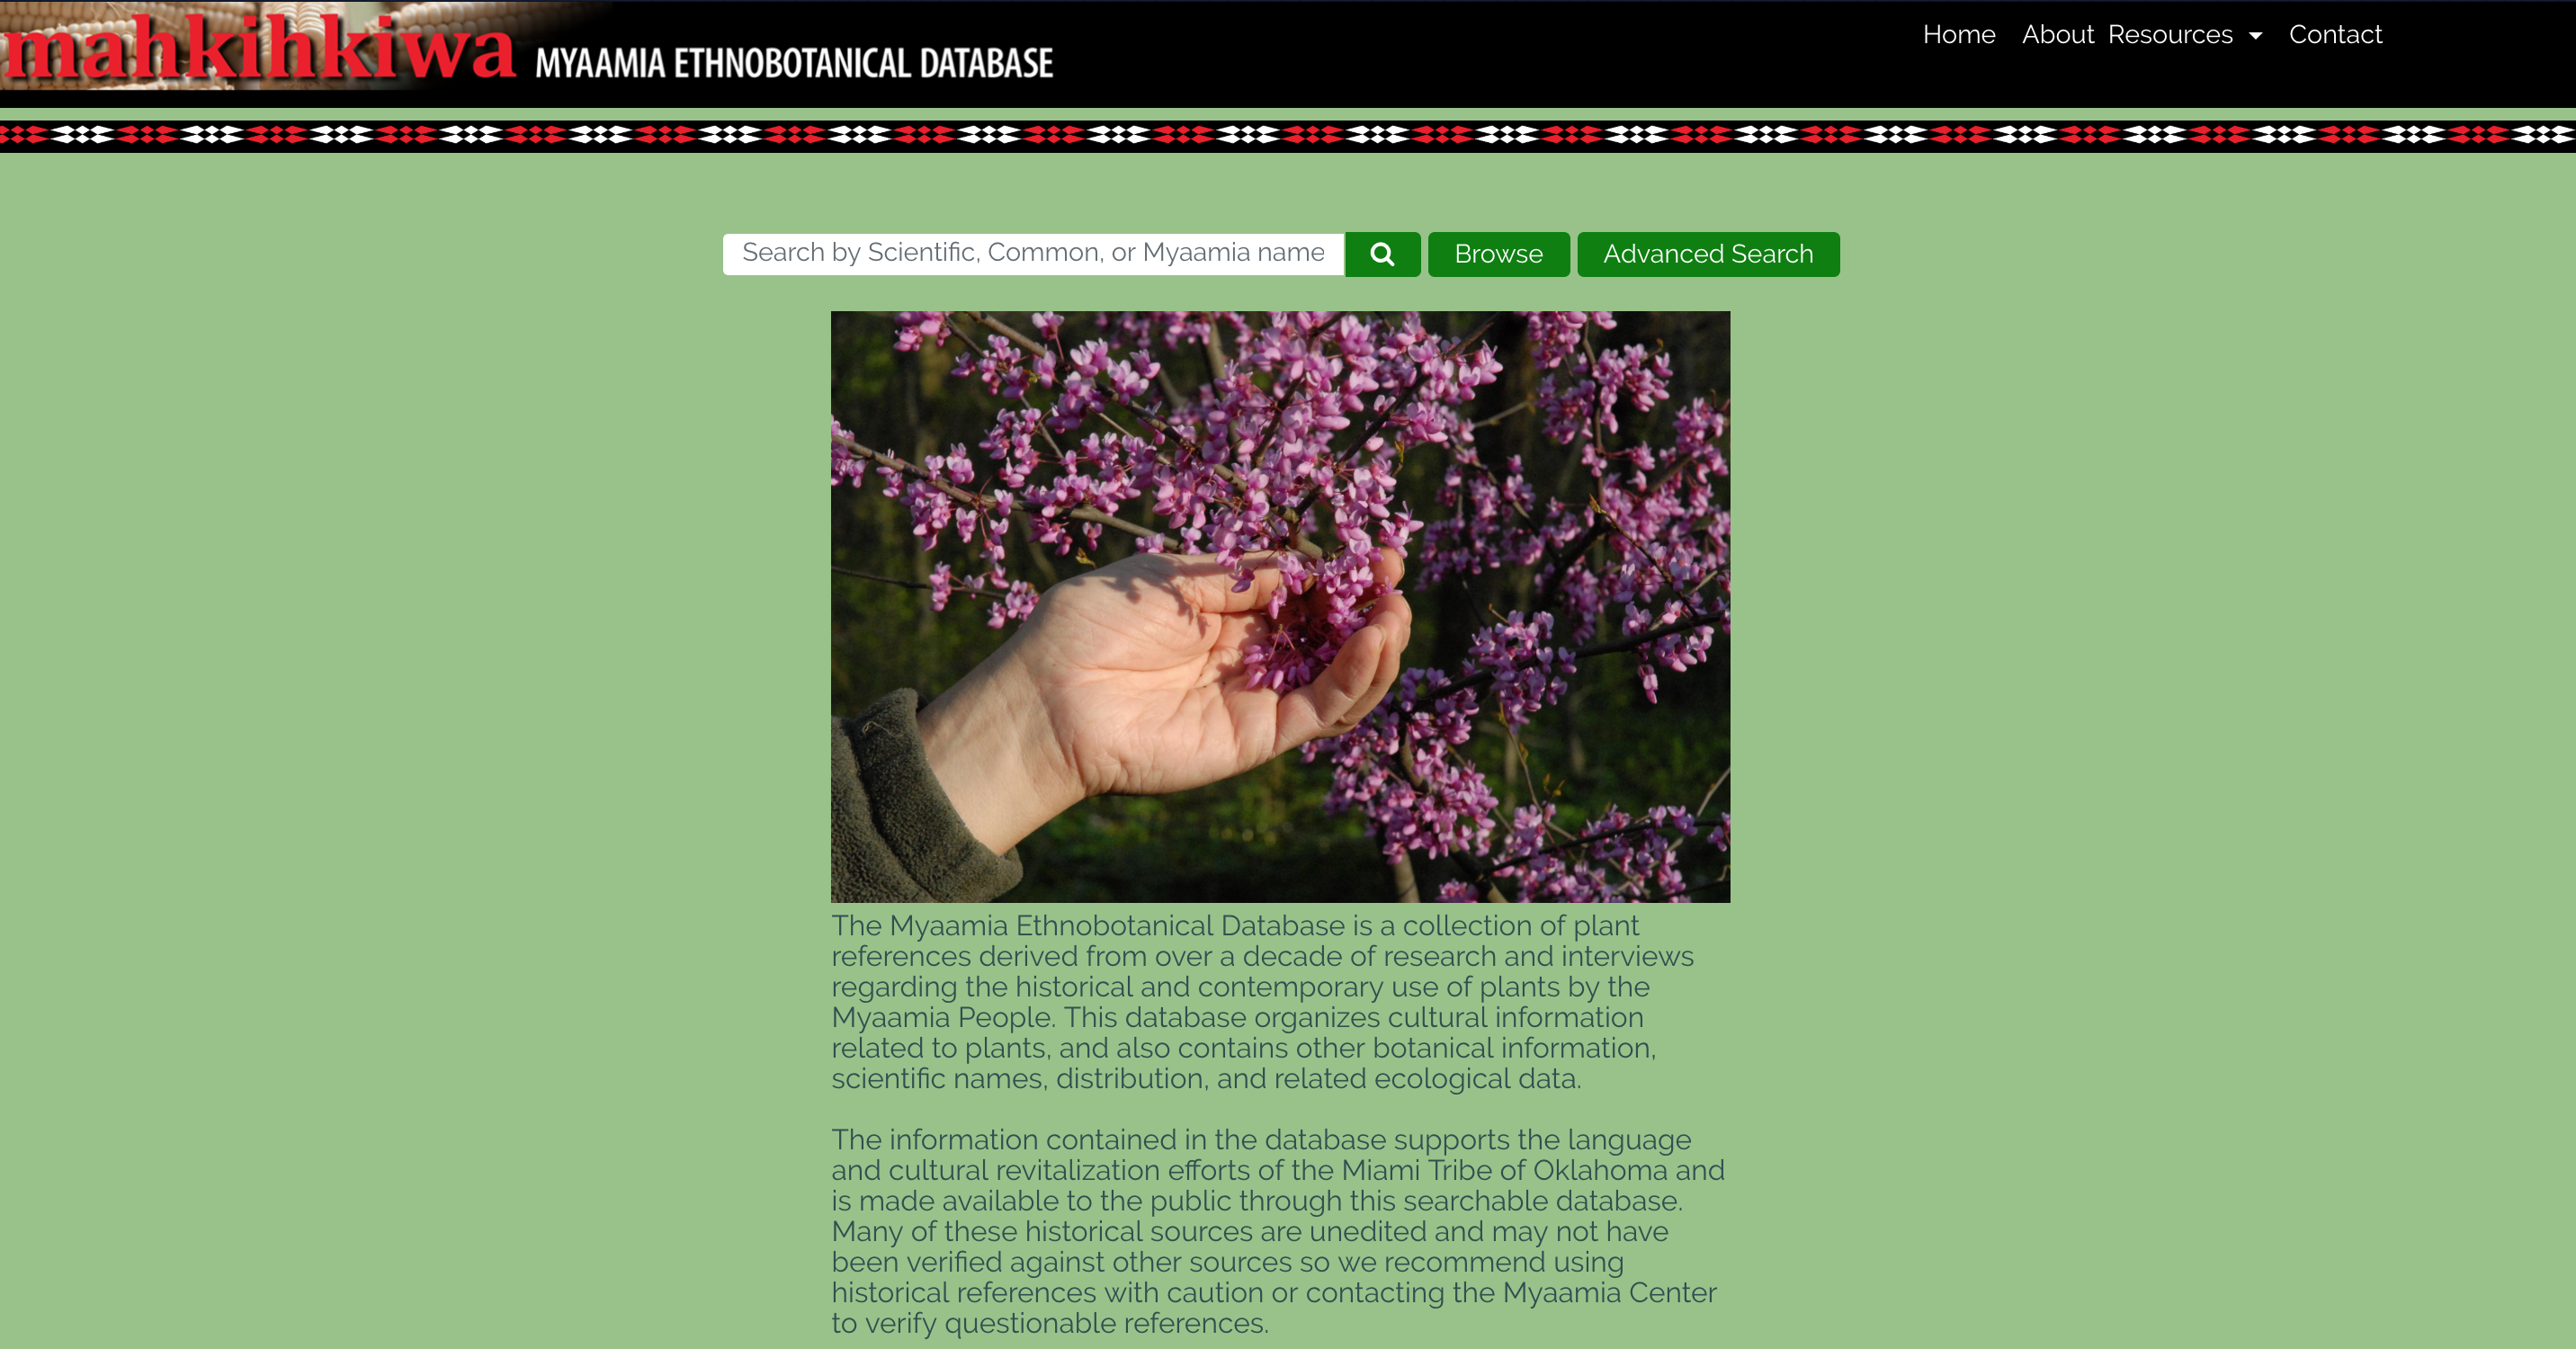 "Homepage of the EDB database with the Mahkihkiwa header at the top left, along with various menu buttons  on the top right.  In the center of the page is an image of a hand holding leaves of a purple branch. Above this image is a search bar with a search button next to it, and a ""Browse"" and ""Advanced Search"" button. Below the image, is a description of the EDB."